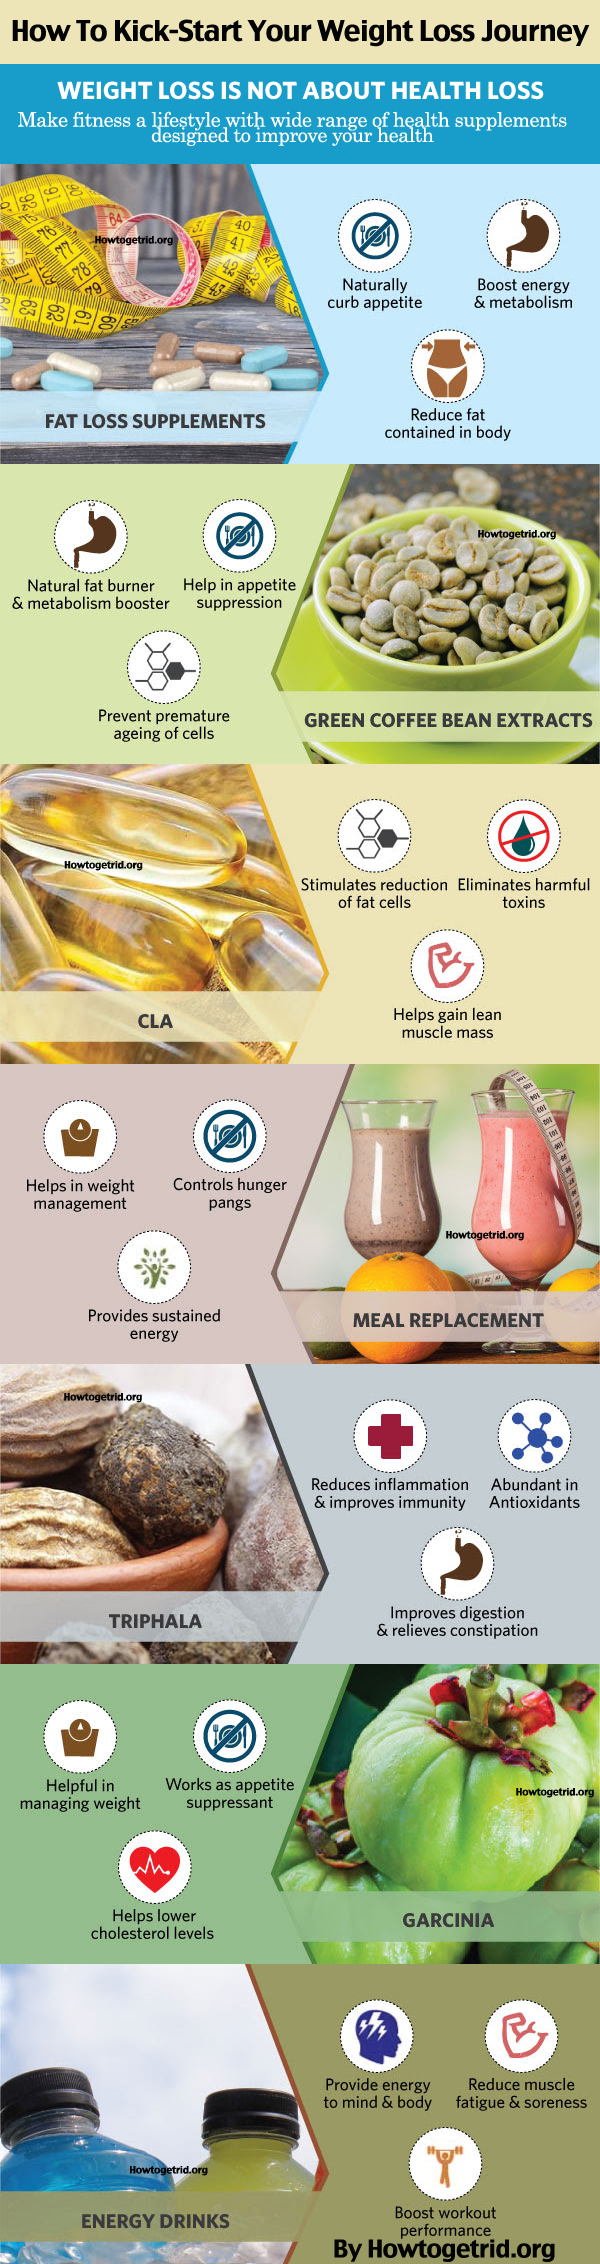 Infographic – How To kick-Start Your Weight Loss Journey: 7 Supplements